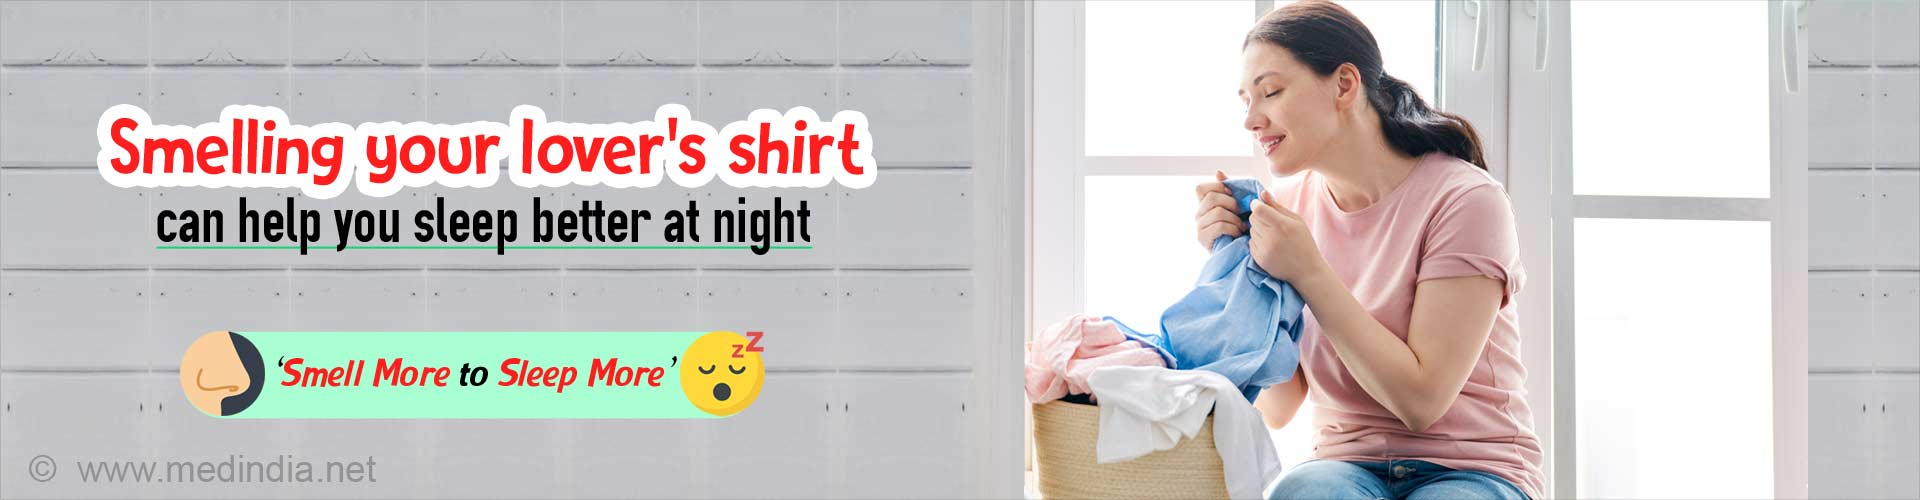 Sleep Well at Night: Smelling Your Lover's Shirt can Help You Catch Some Zzz's